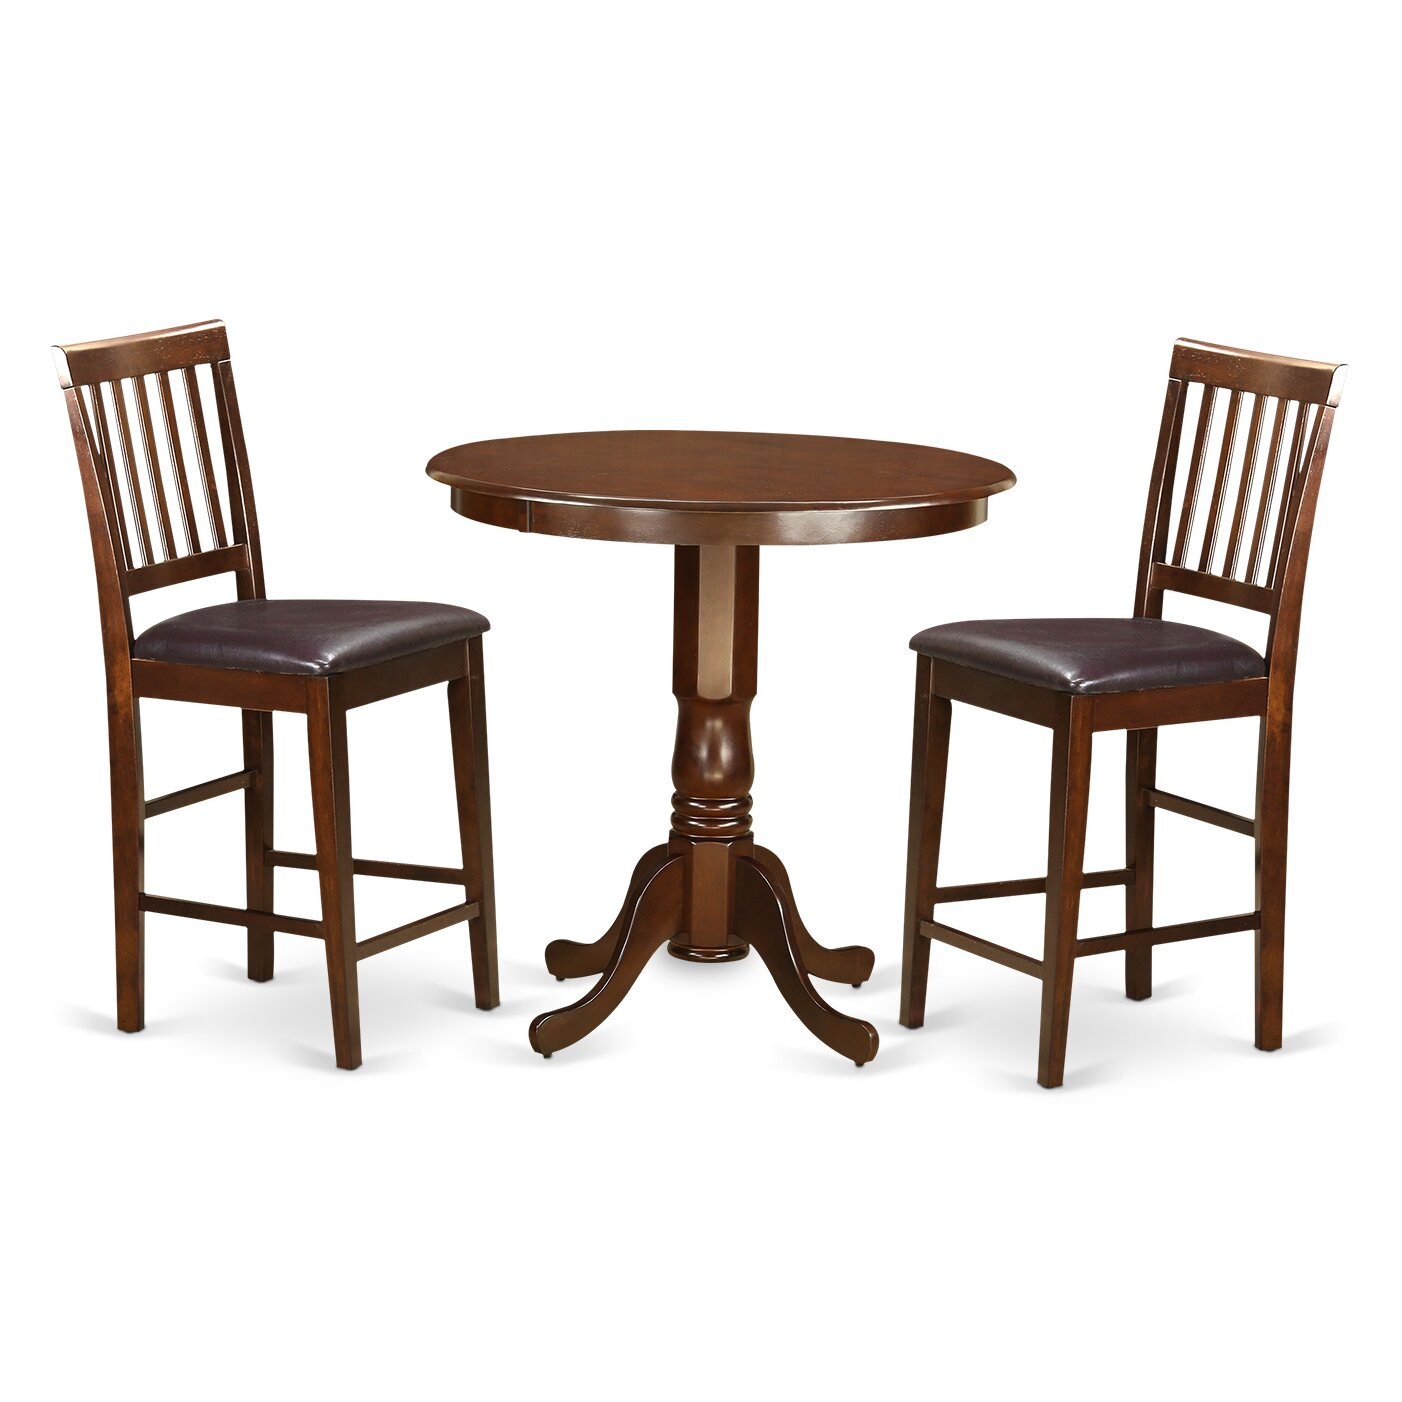 jackson 3 piece counter height pub table set wayfair. Black Bedroom Furniture Sets. Home Design Ideas